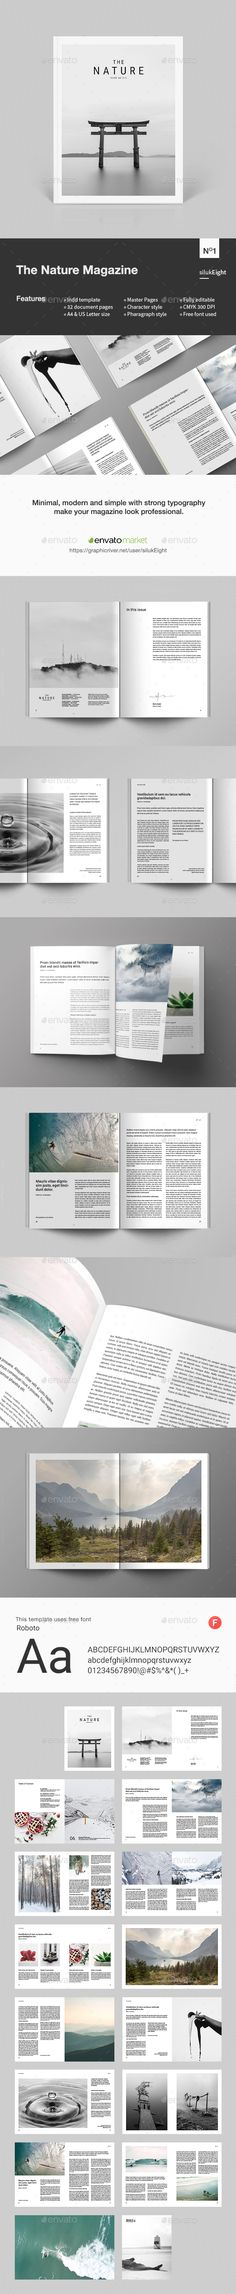 The Nature Magazine — InDesign INDD #brochure #clean • Download ➝ https://graphicriver.net/item/the-nature-magazine/20512480?ref=pxcr